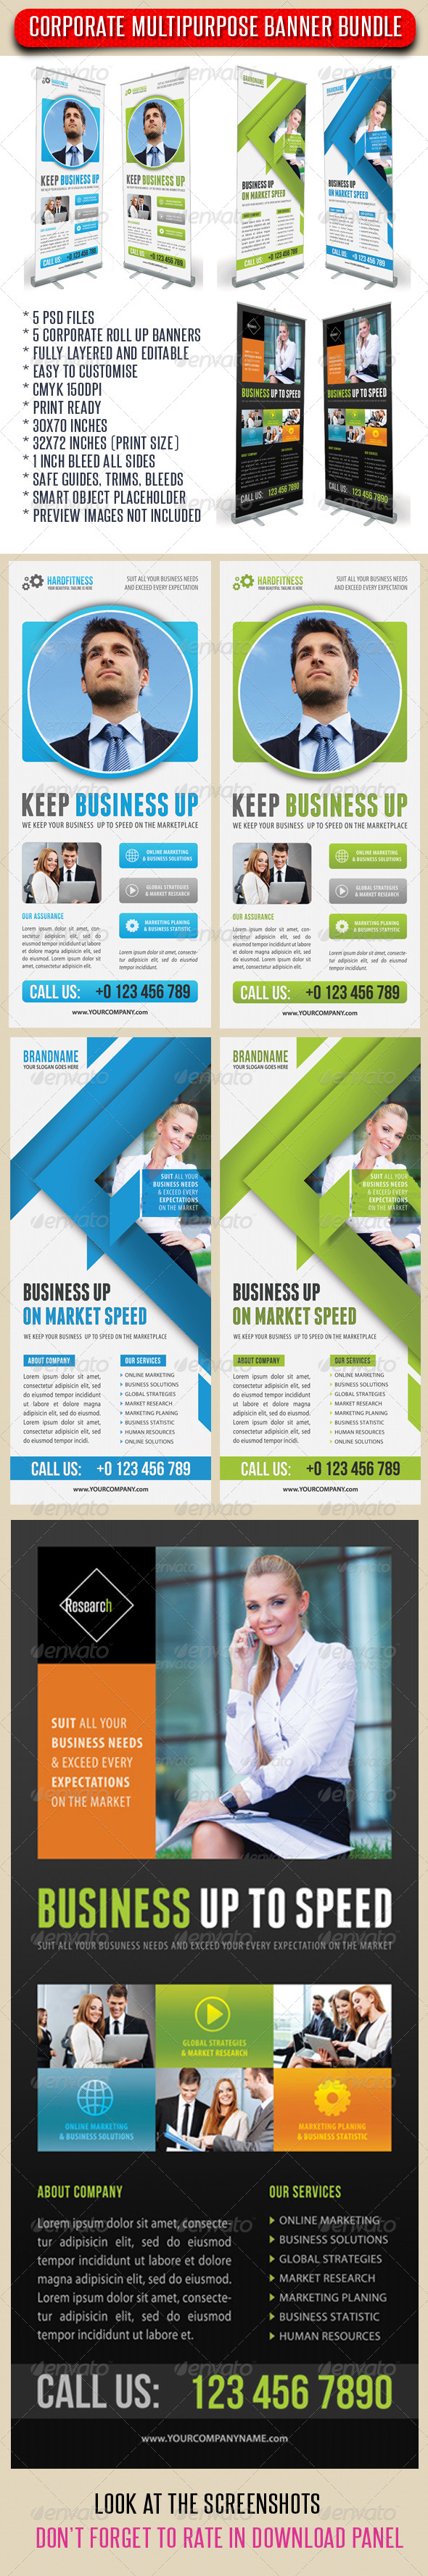 GraphicRiver 3 in 1 Corporate Rollup Banner Bundle 05 7347539